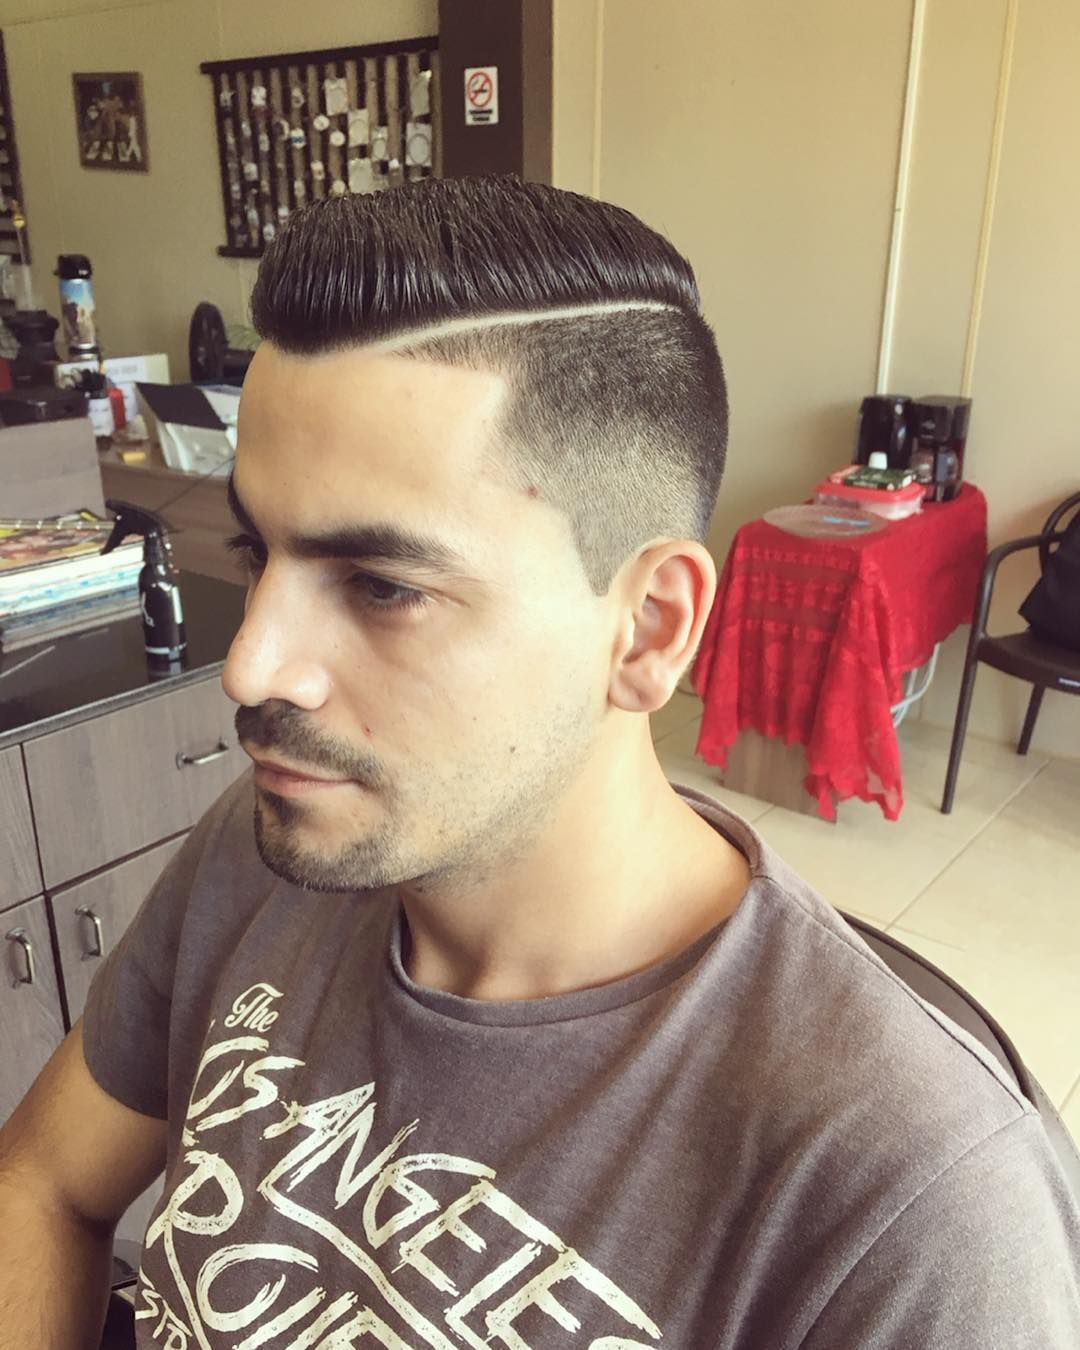 Haircut Haircuts For Men Barber Shop Great Haircuts